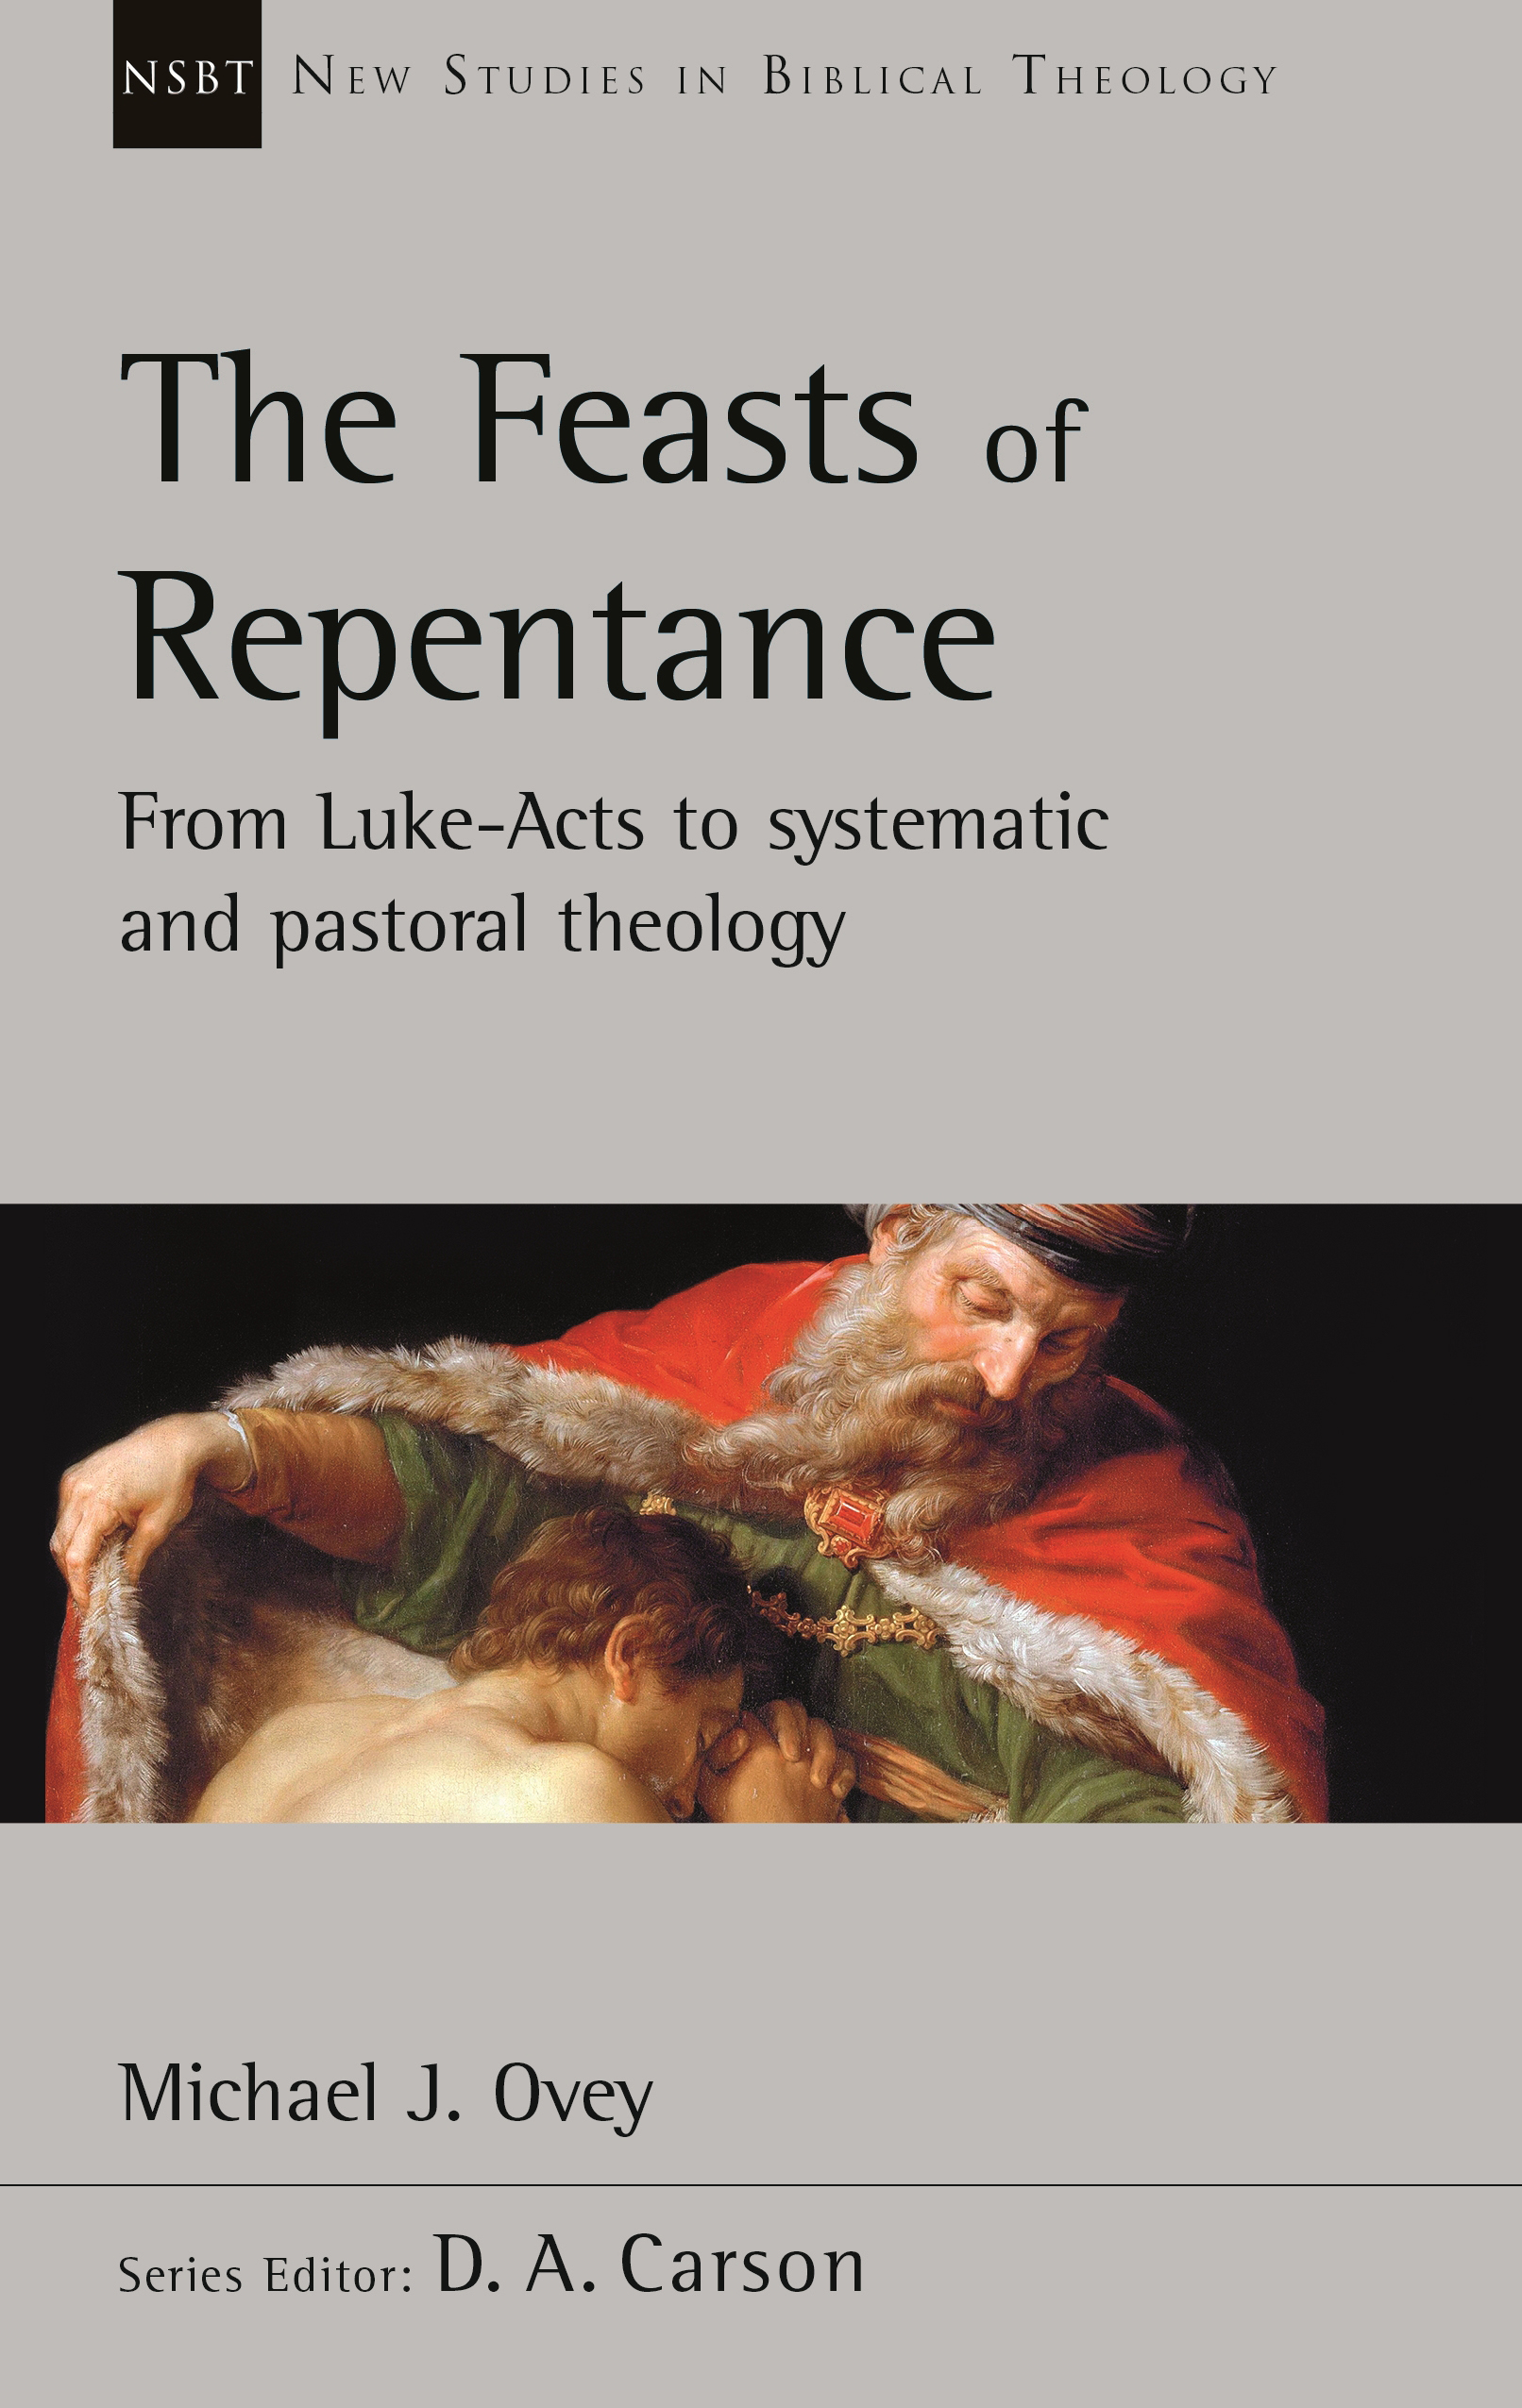 The Feasts of Repentance